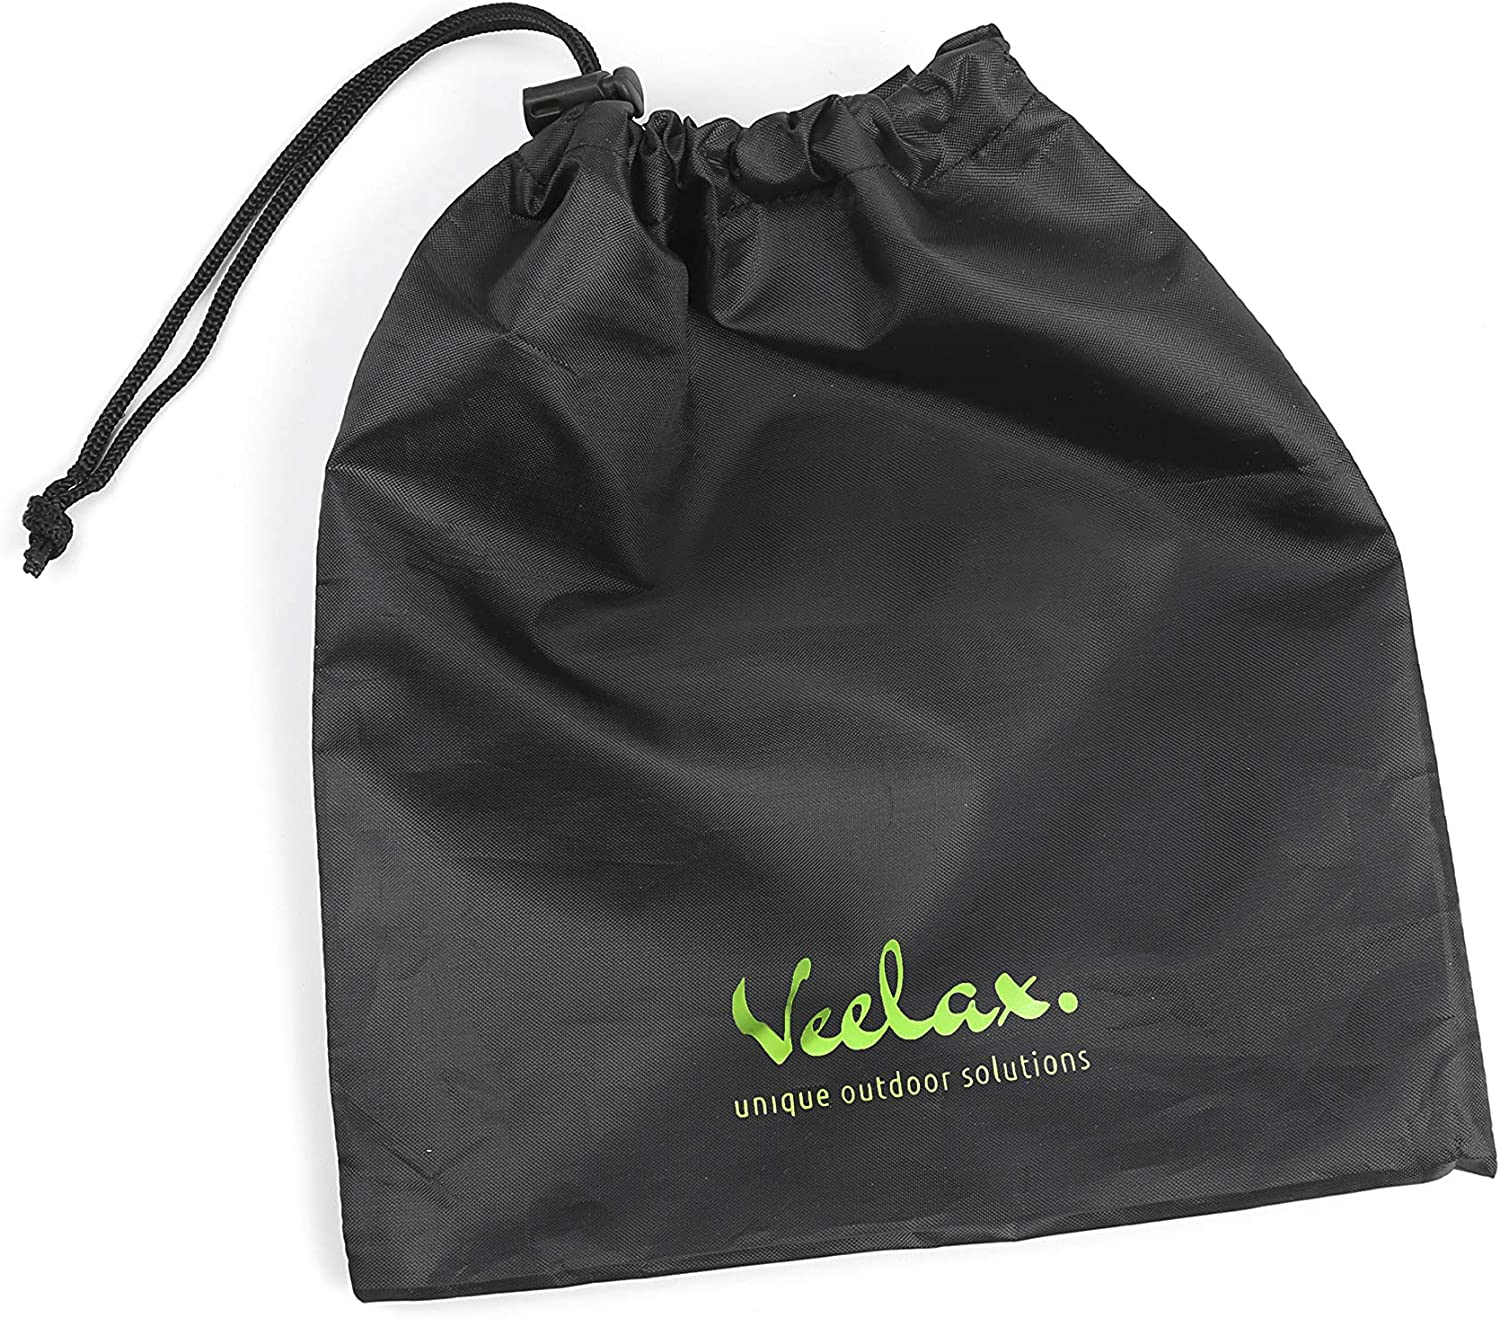 Veelax I Outdoor Seat Pad Foldable Seat Cushion for Travelling Waterproof Includes Practical Carry Bag